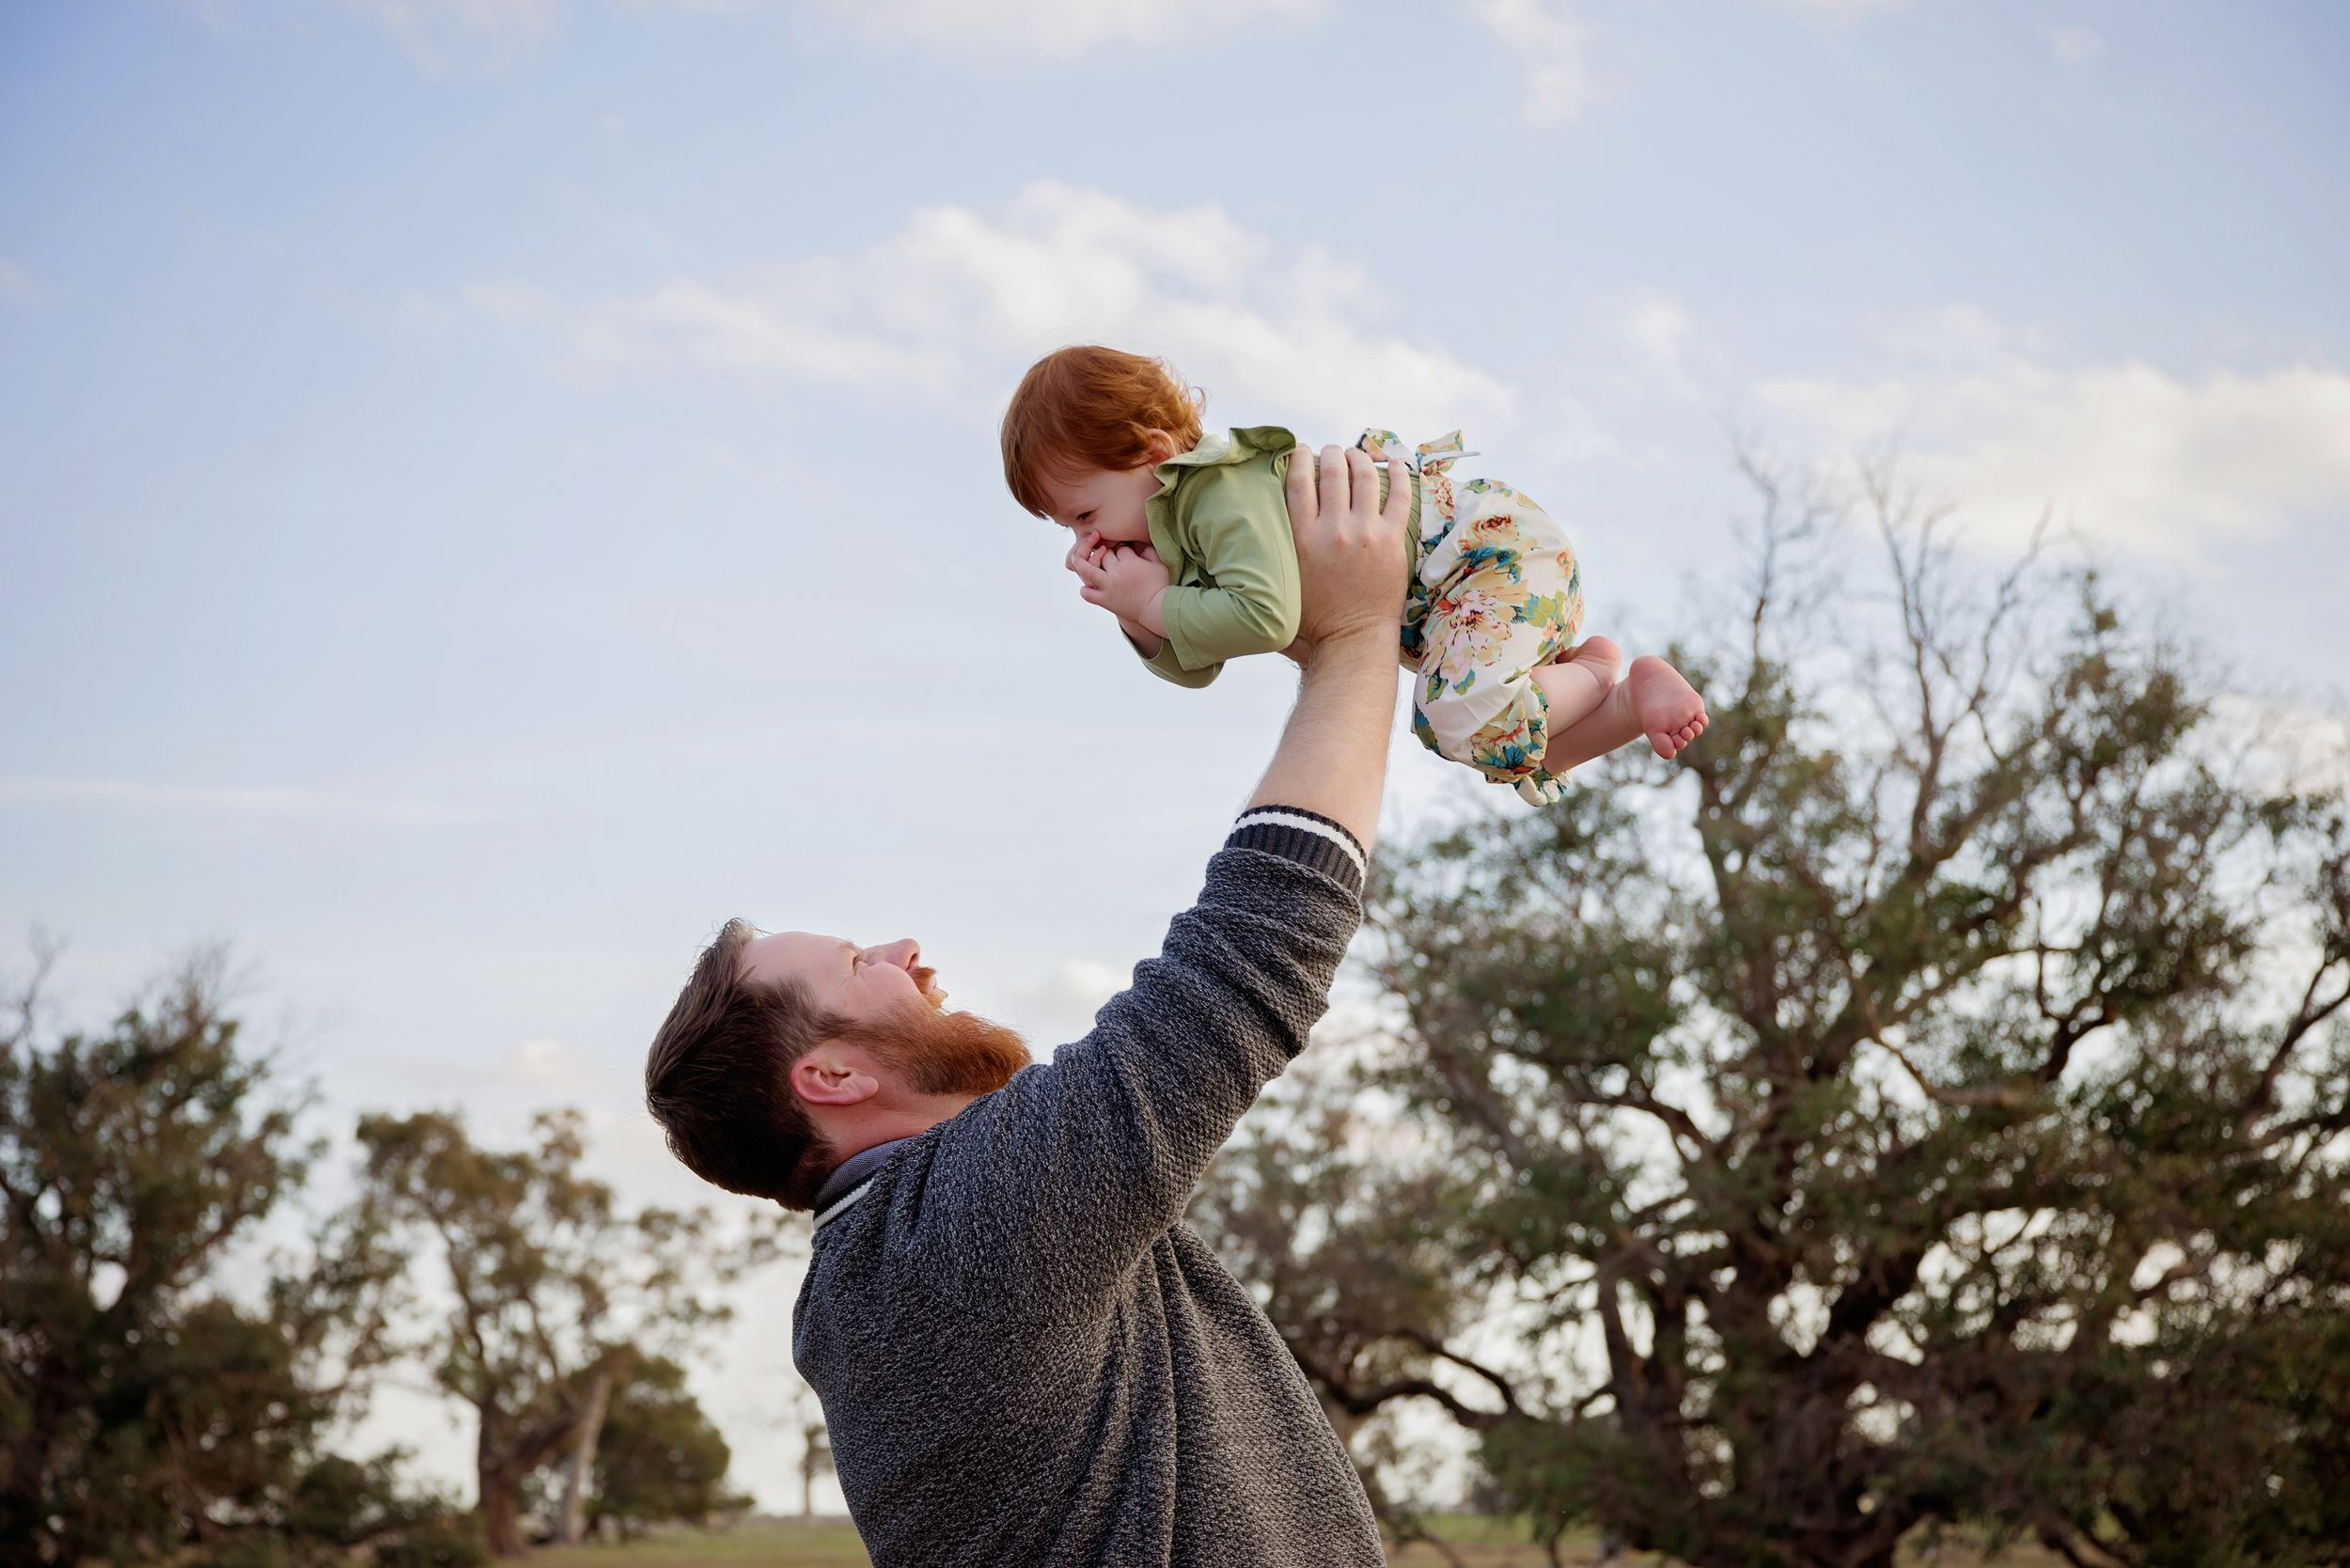 father holding baby daughter in the air outside smiling at each other